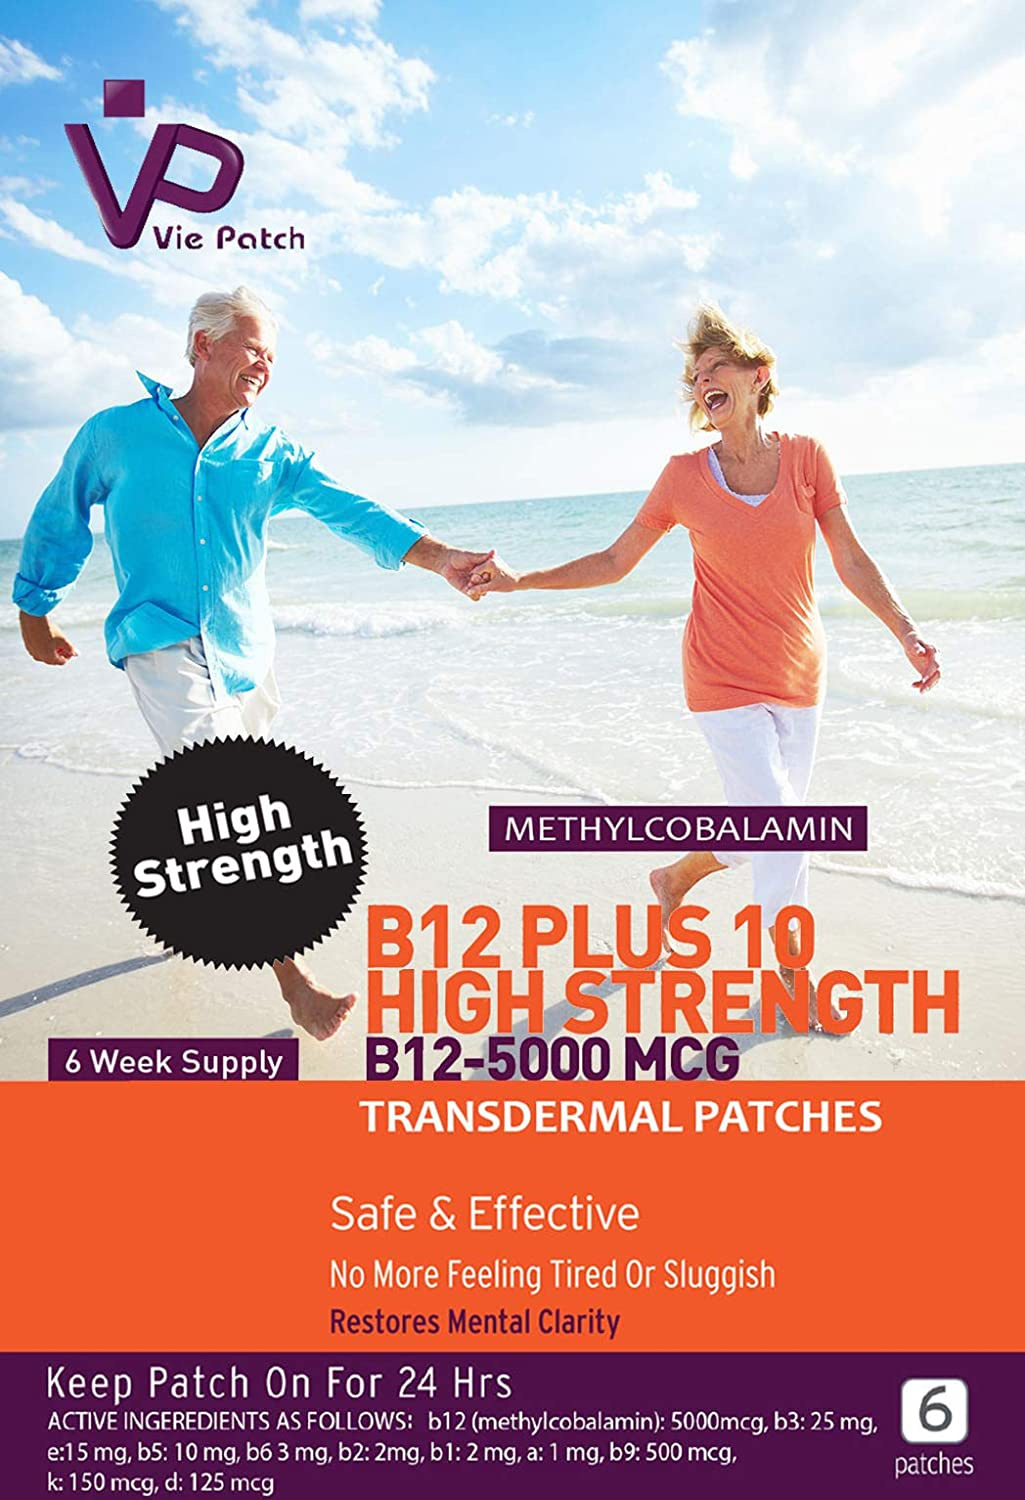 Viepatch vitamina B12 Plus 10 alta resistencia parches ...